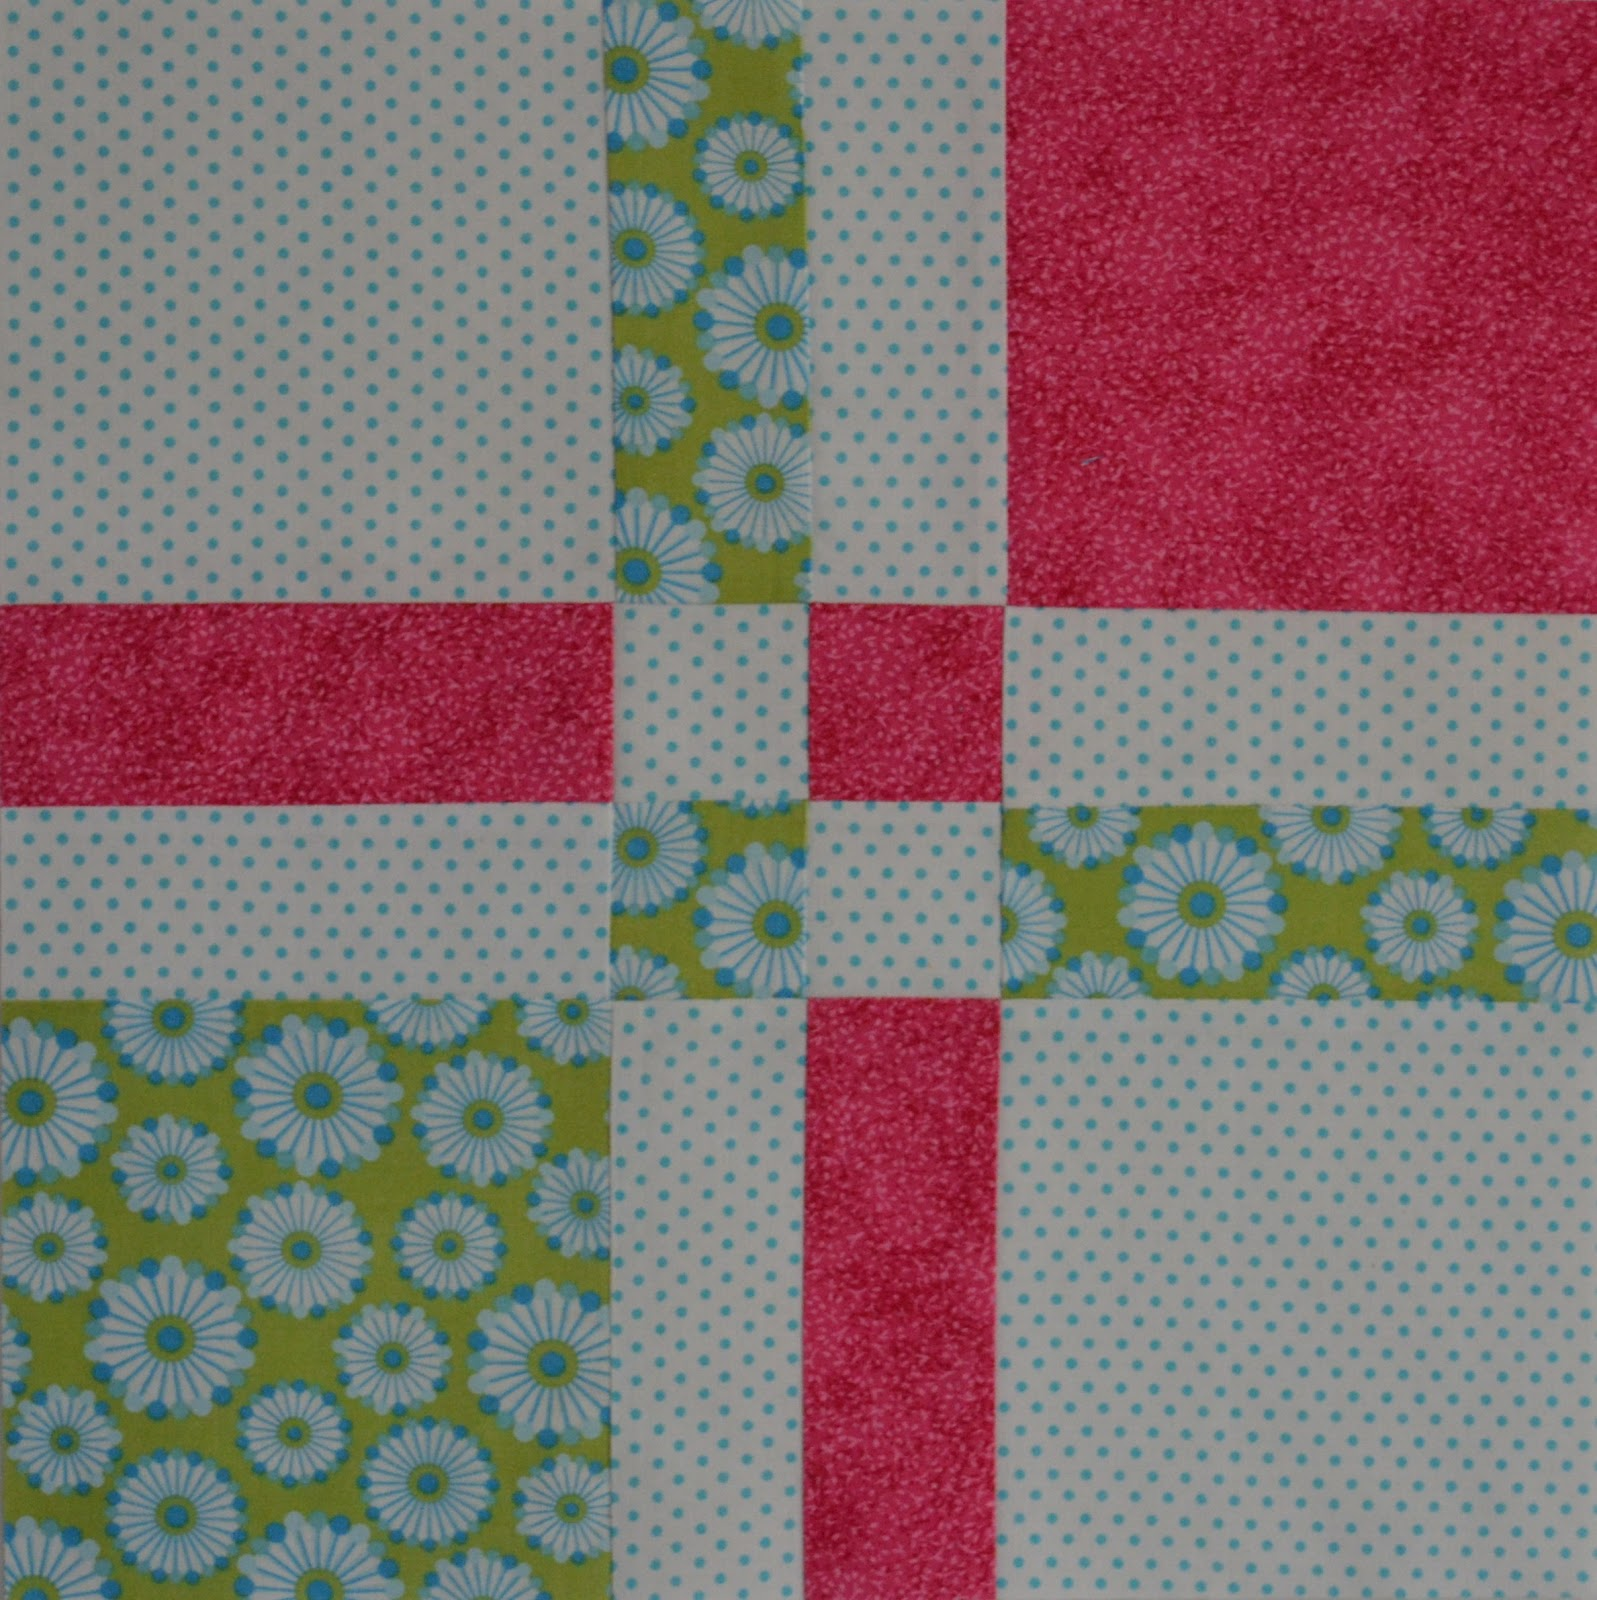 Free Easy Quilt Patterns Instructions : Free Quilt, Craft and Sewing Patterns: Links and Tutorials *With Heart and Hands*: Free Quilt ...